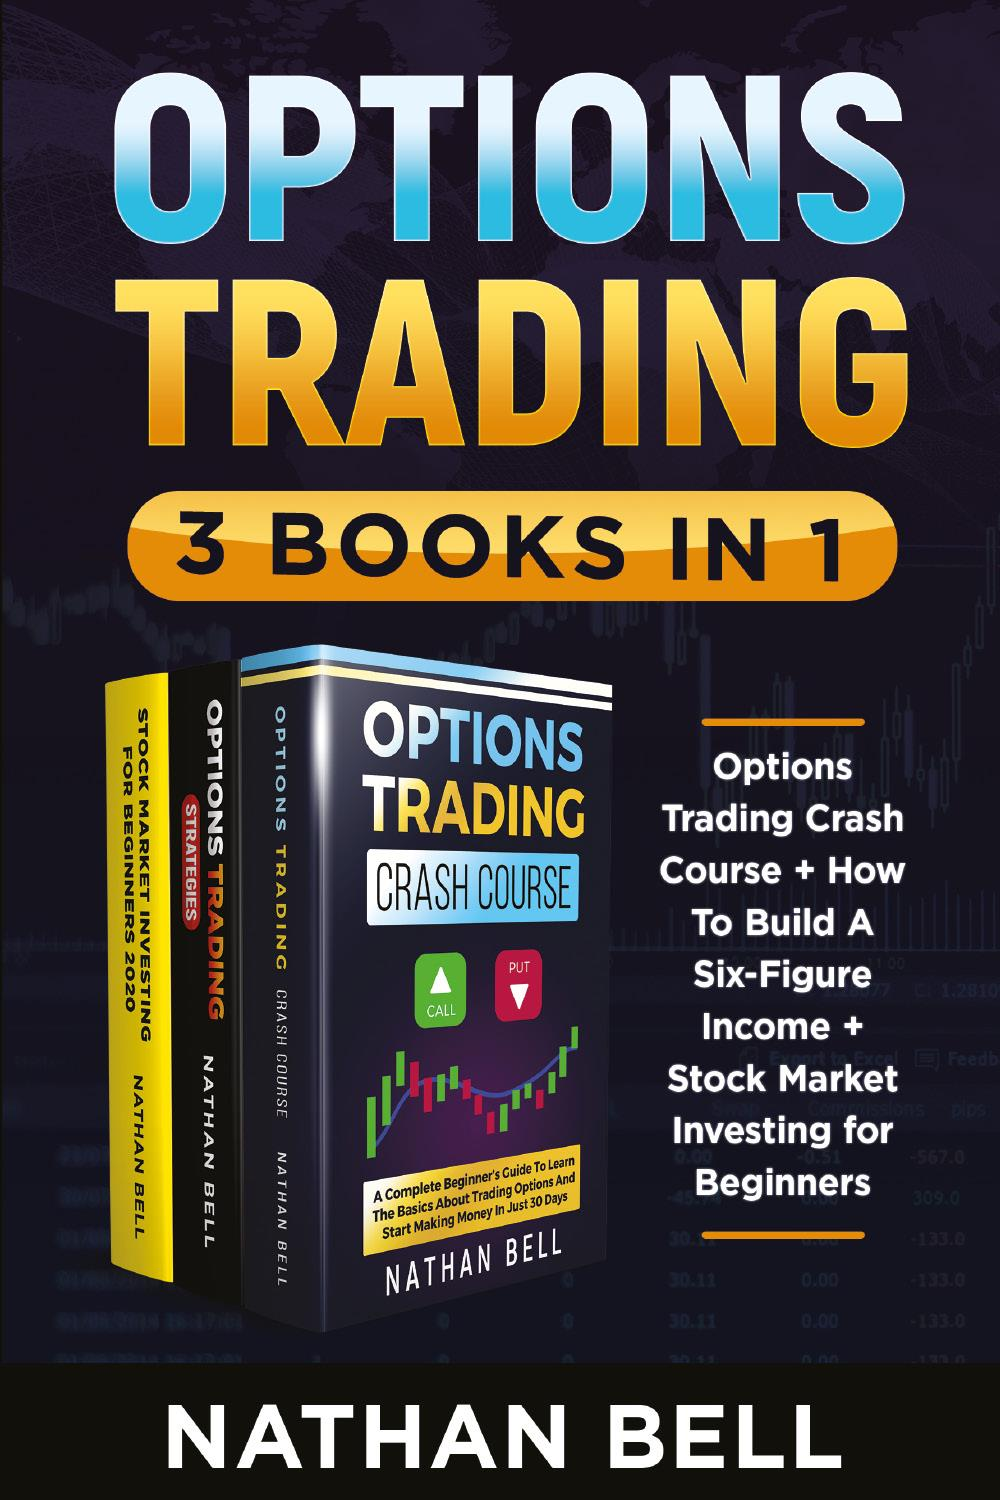 Options Trading (3 Books in 1)